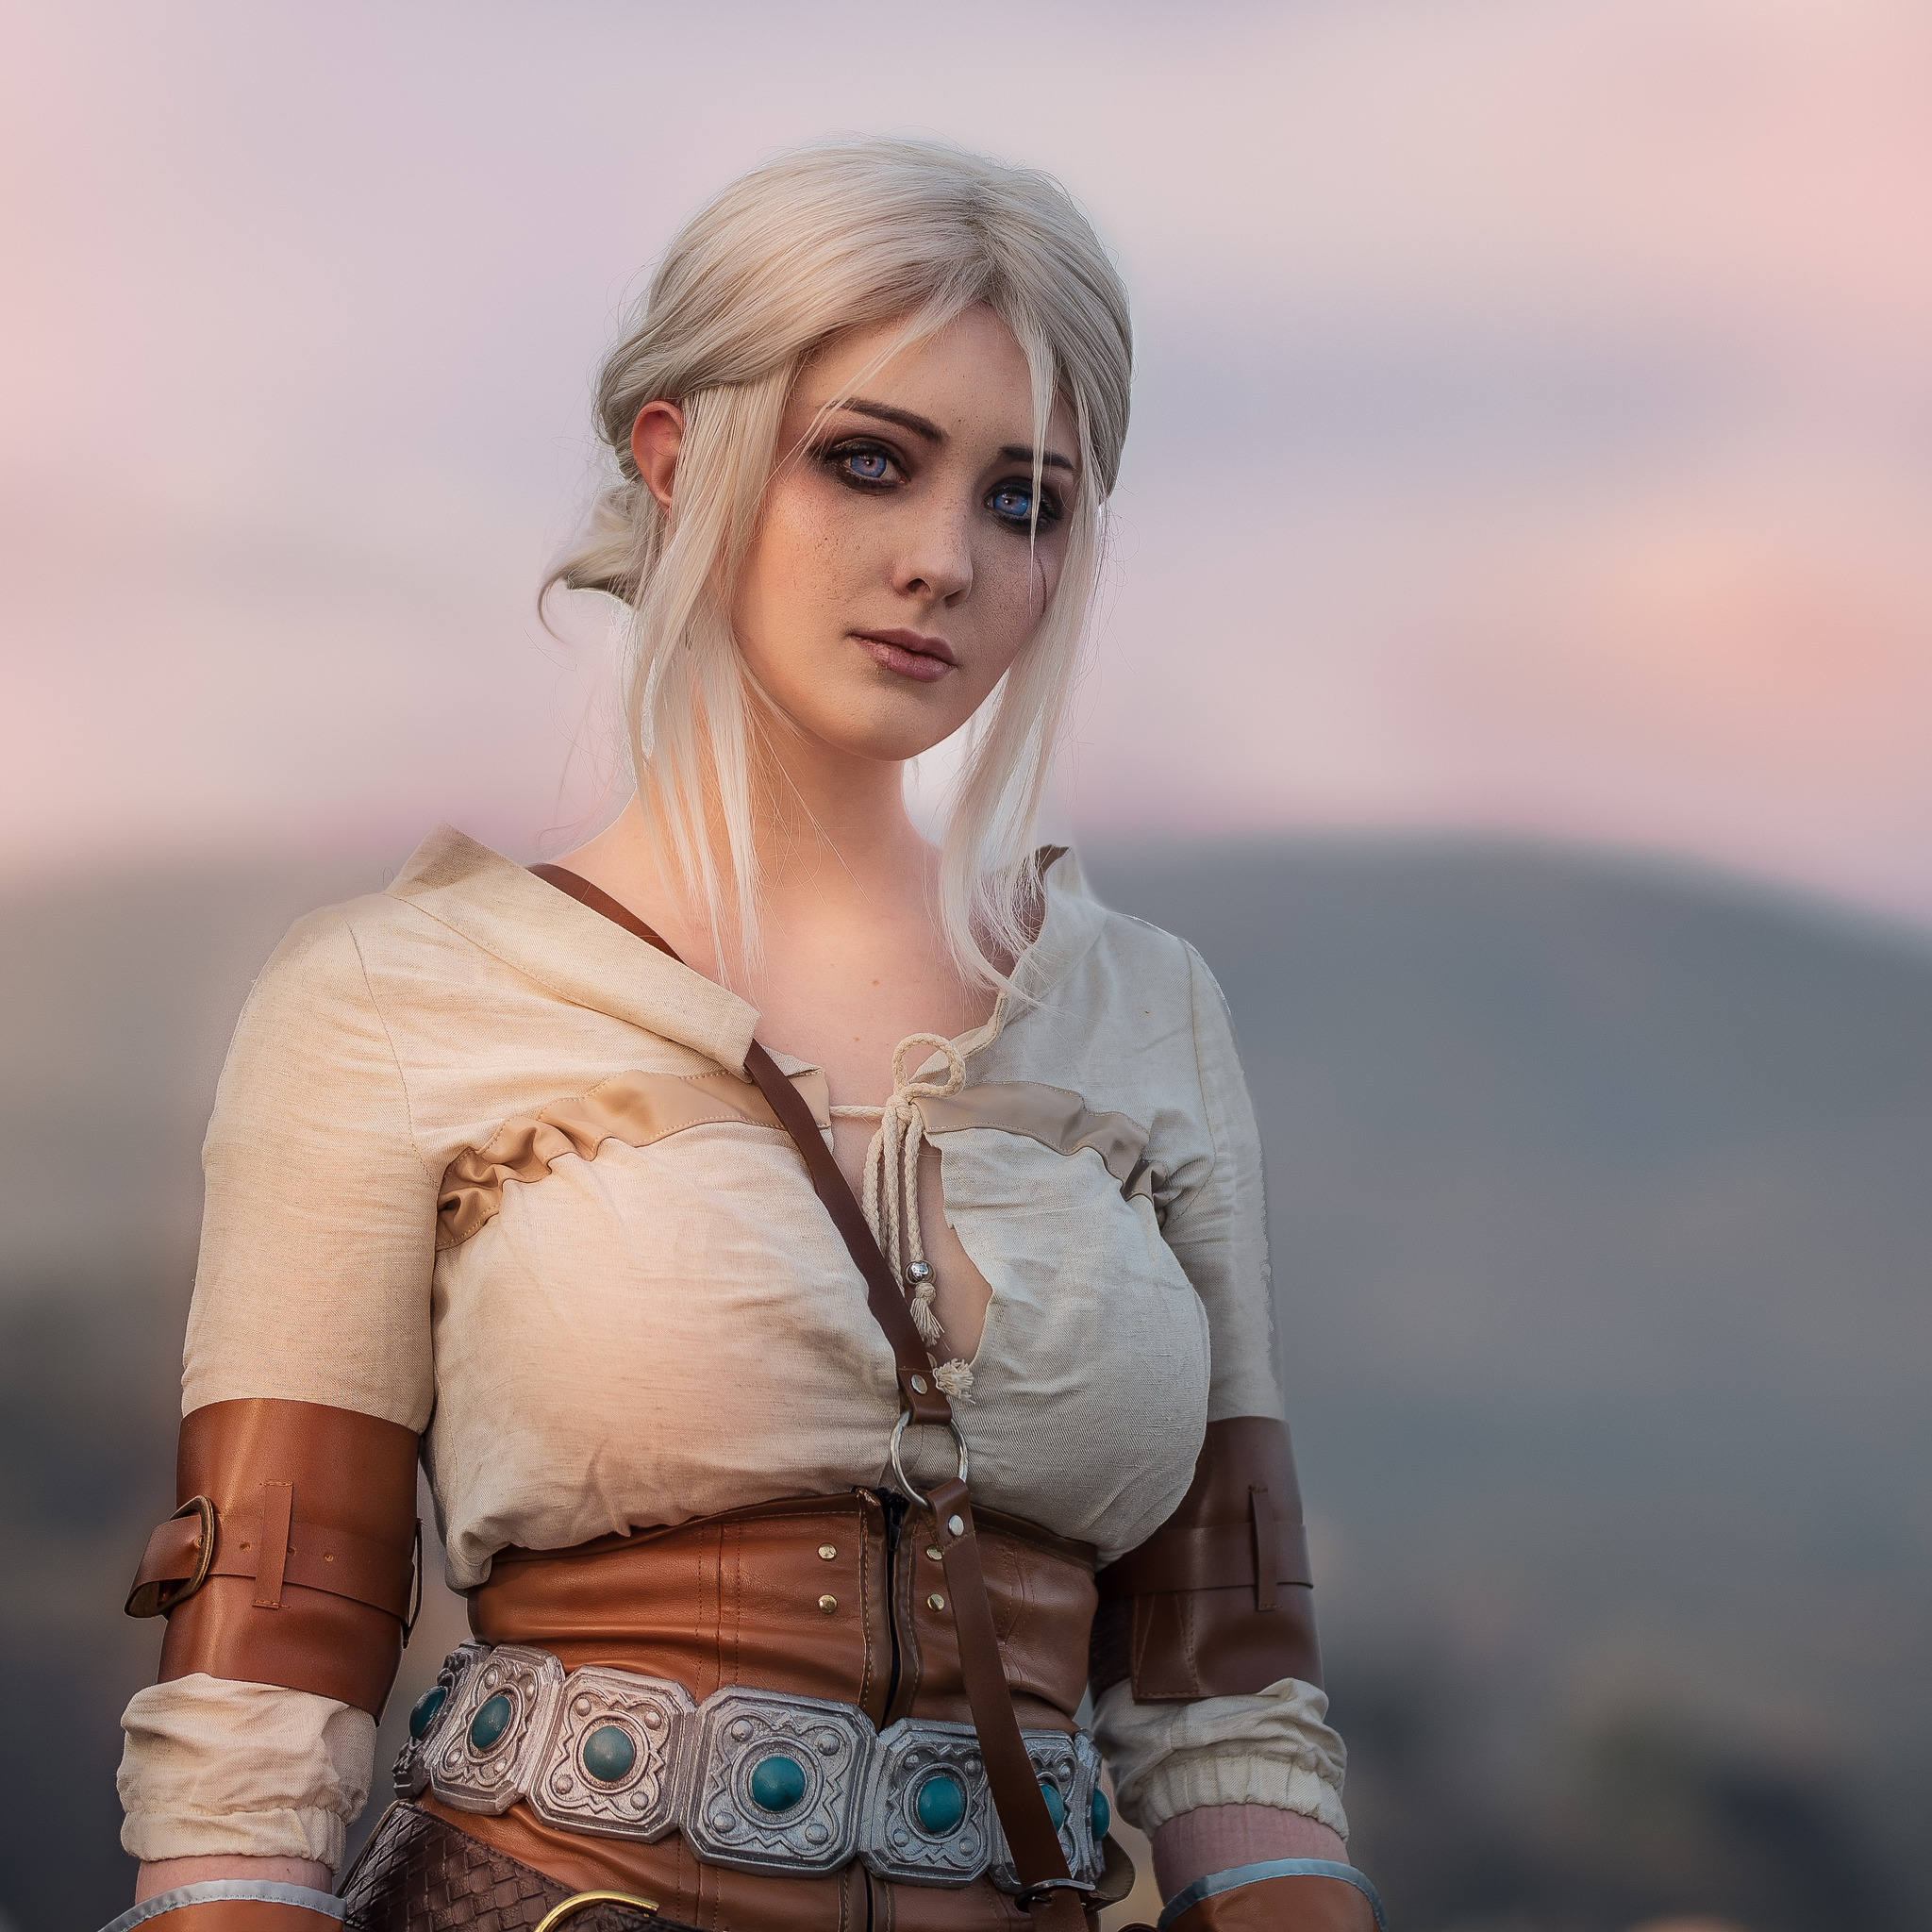 [img]https://hdqwalls.com/download/ciri-the-witcher-cosplay-p8-2048x2048.jpg[/img]